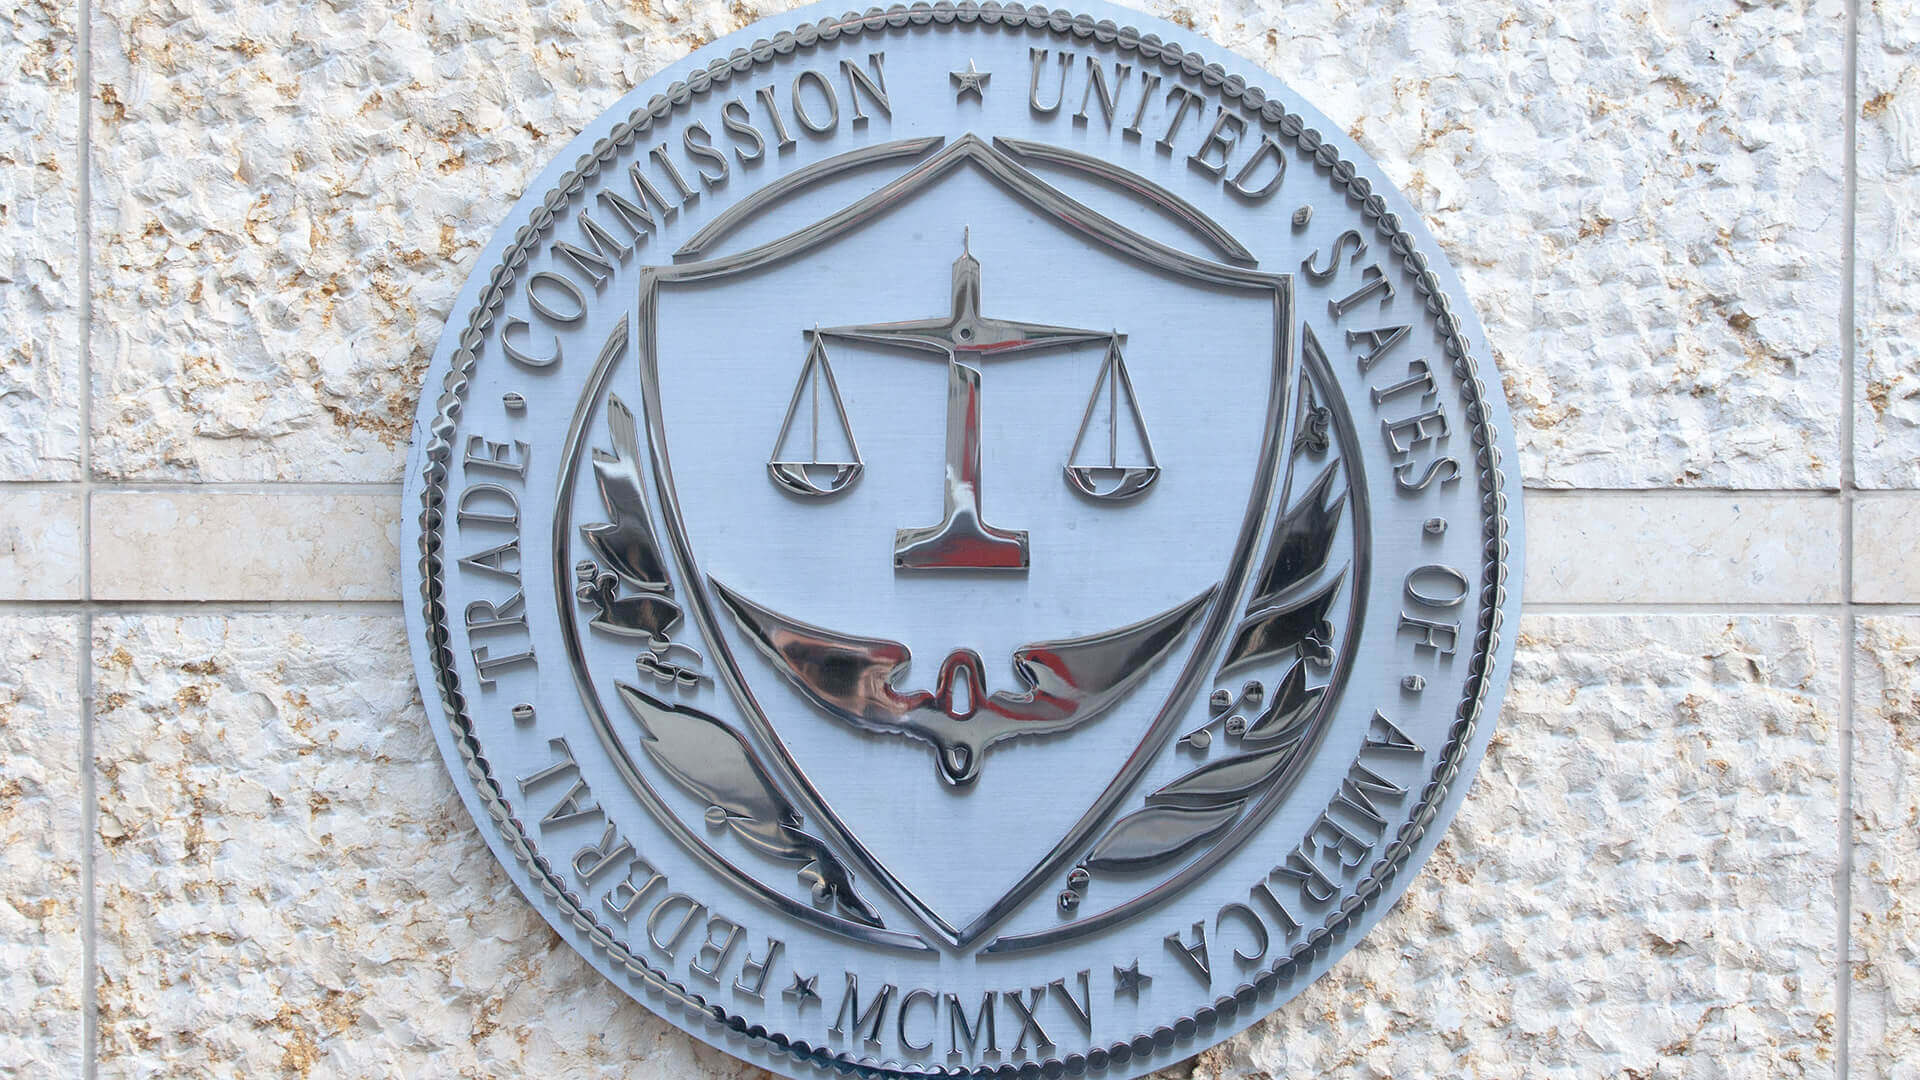 ftc-logo-sign-ss-1920